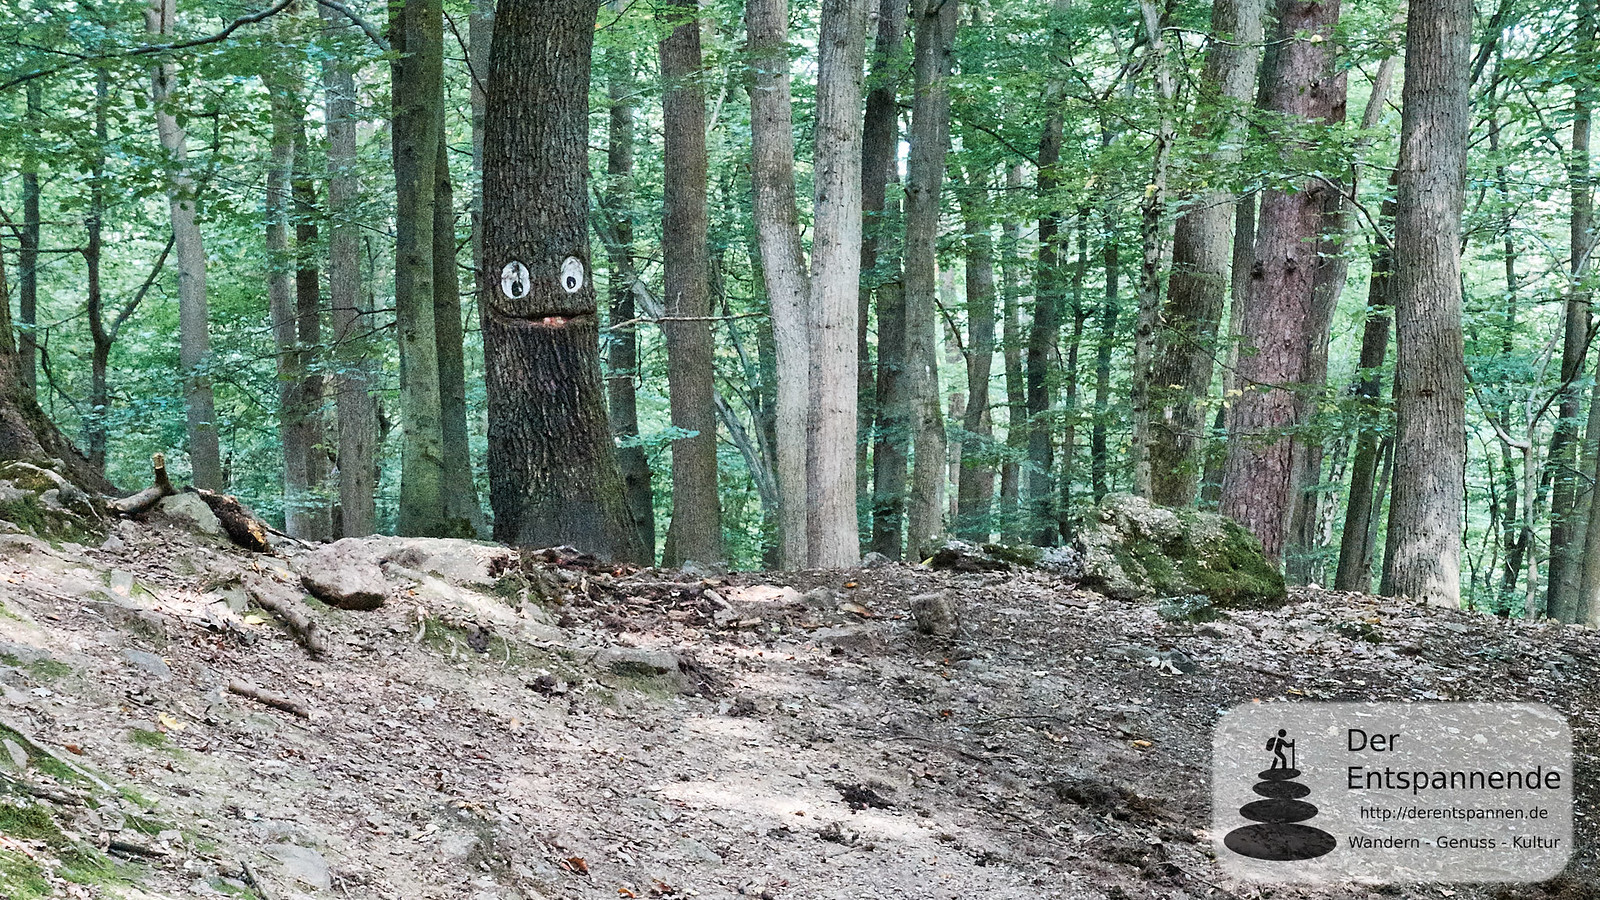 Smiley in der Steckeschlääferklamm